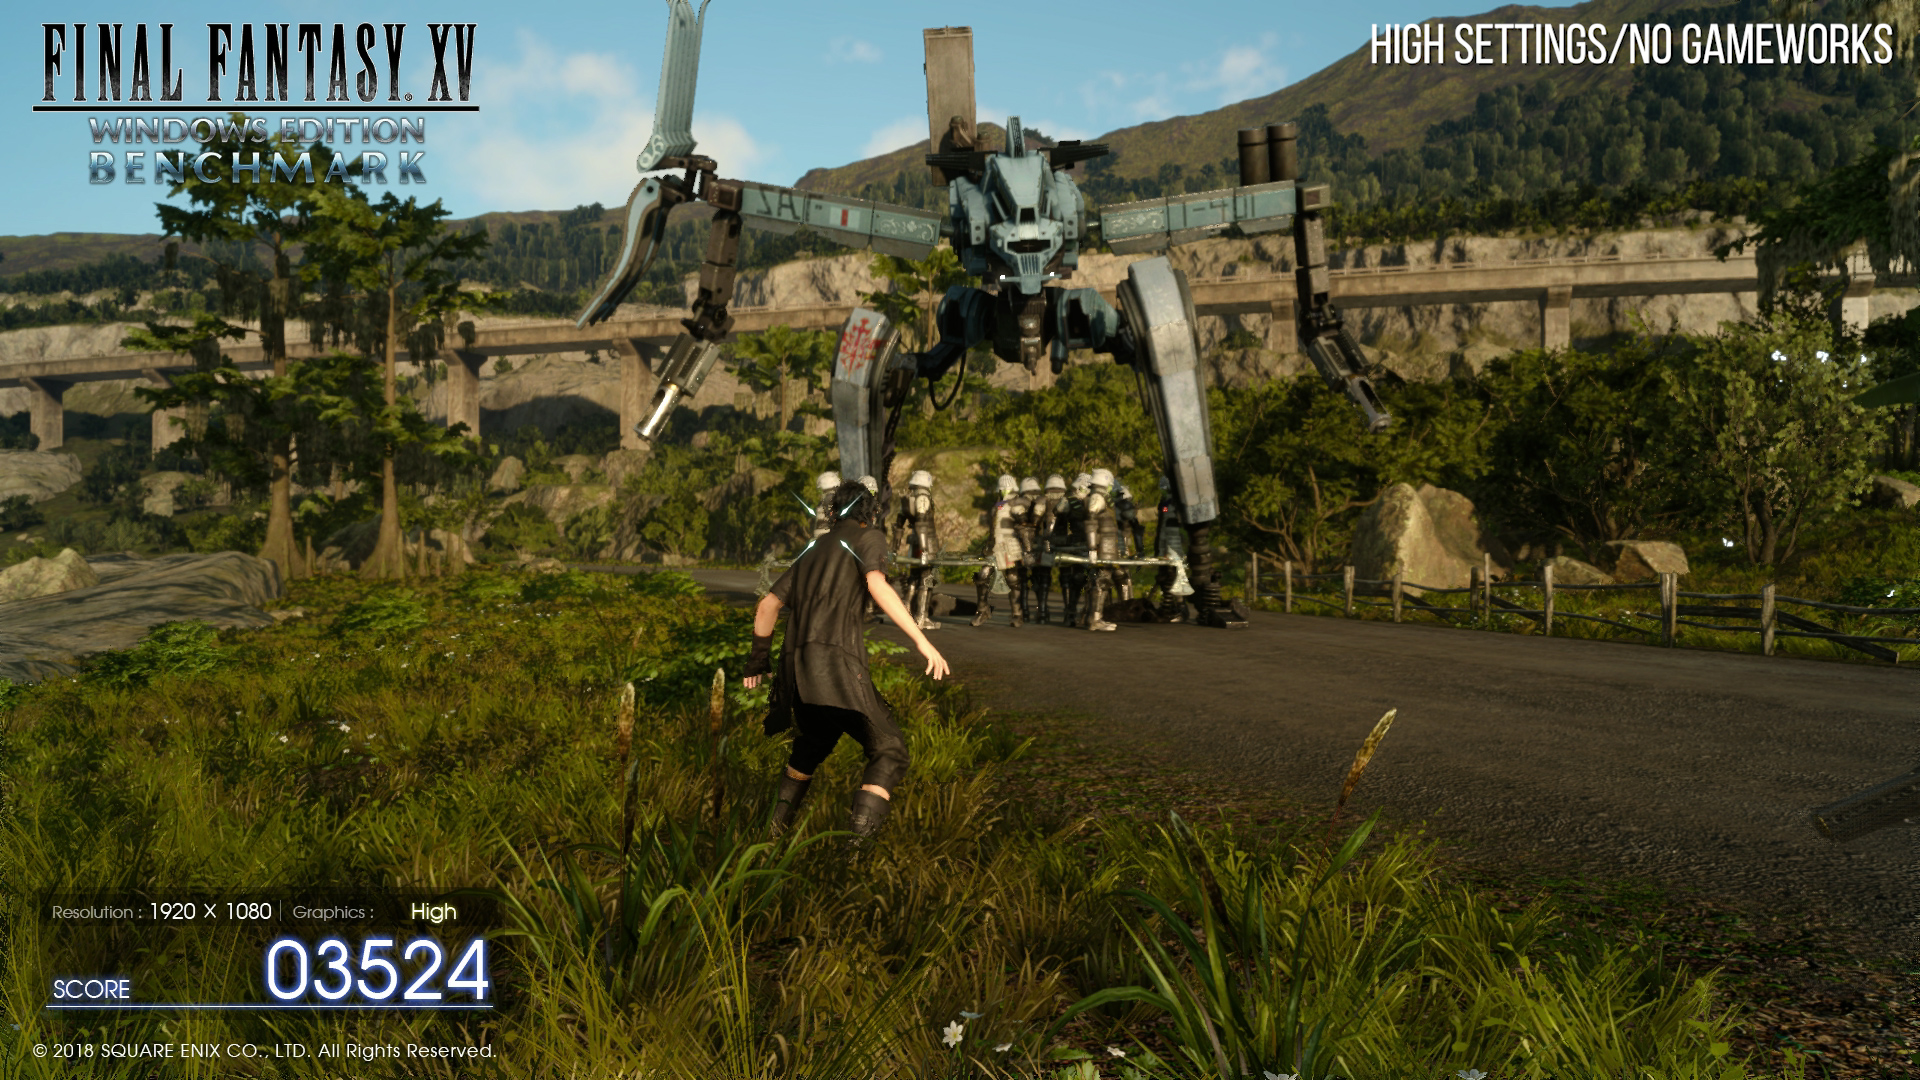 Final Fantasy 15 Windows Edition looks beautiful but at what cost